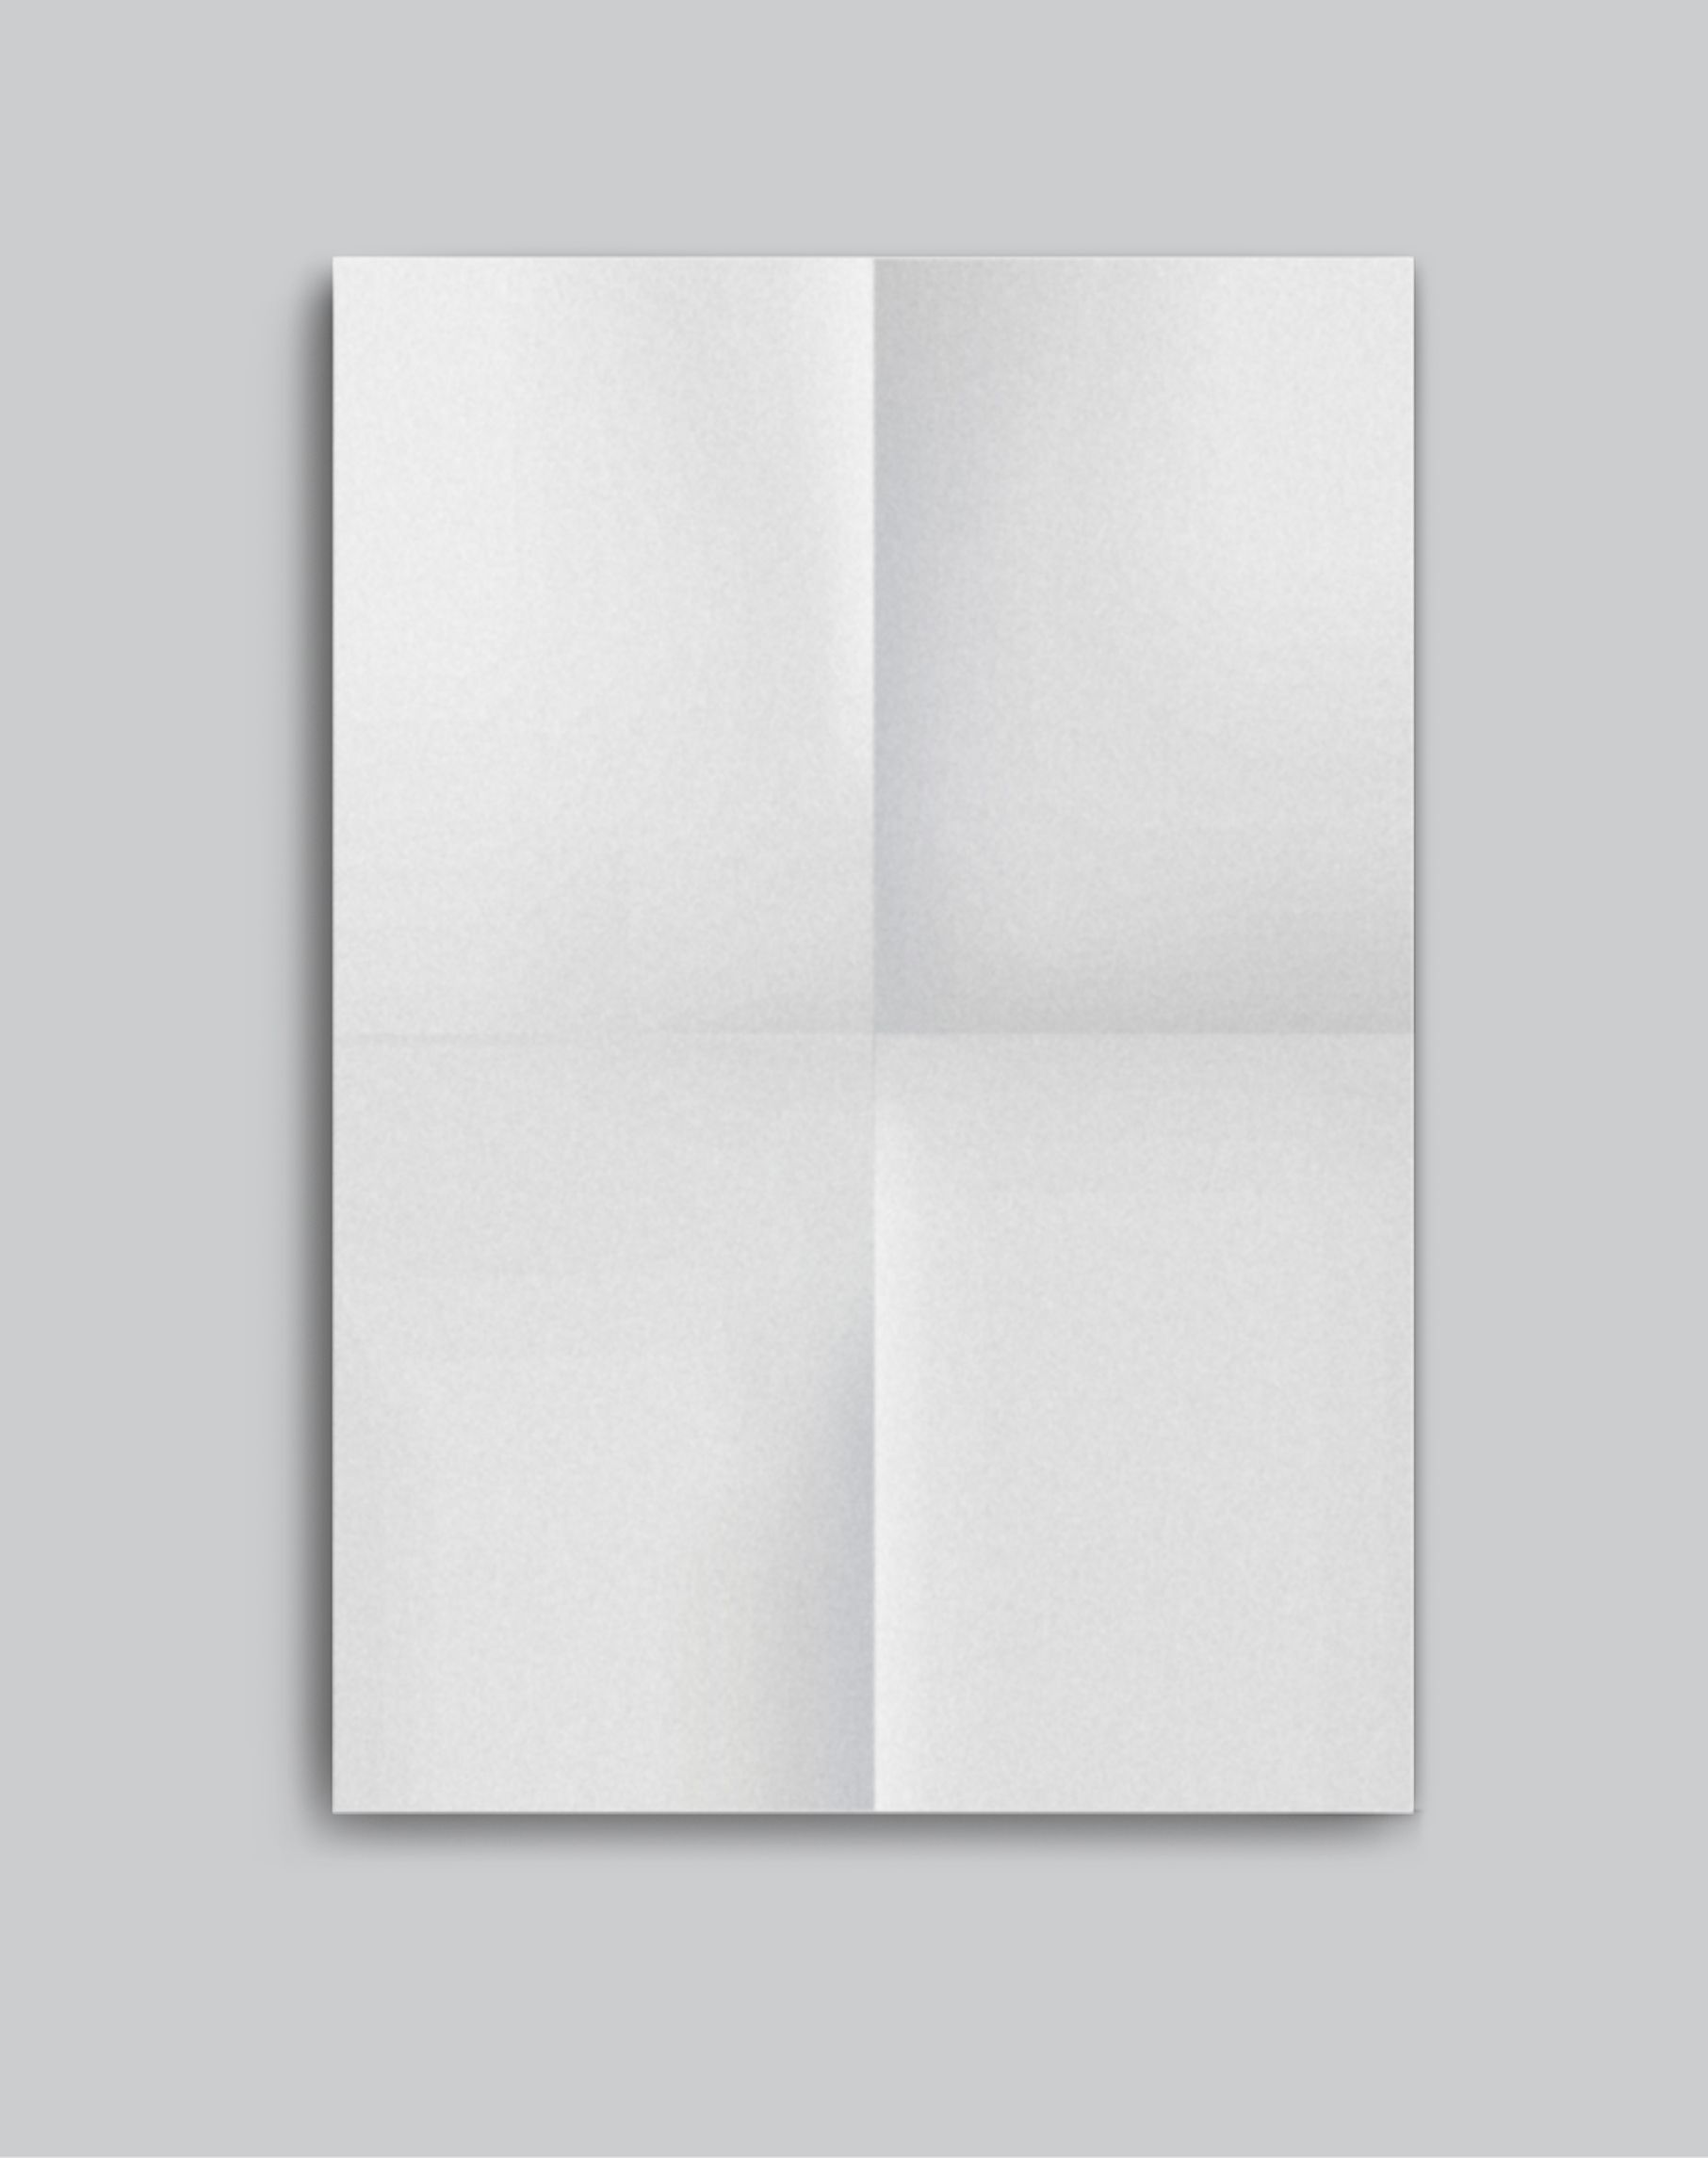 Blank poster templates free download